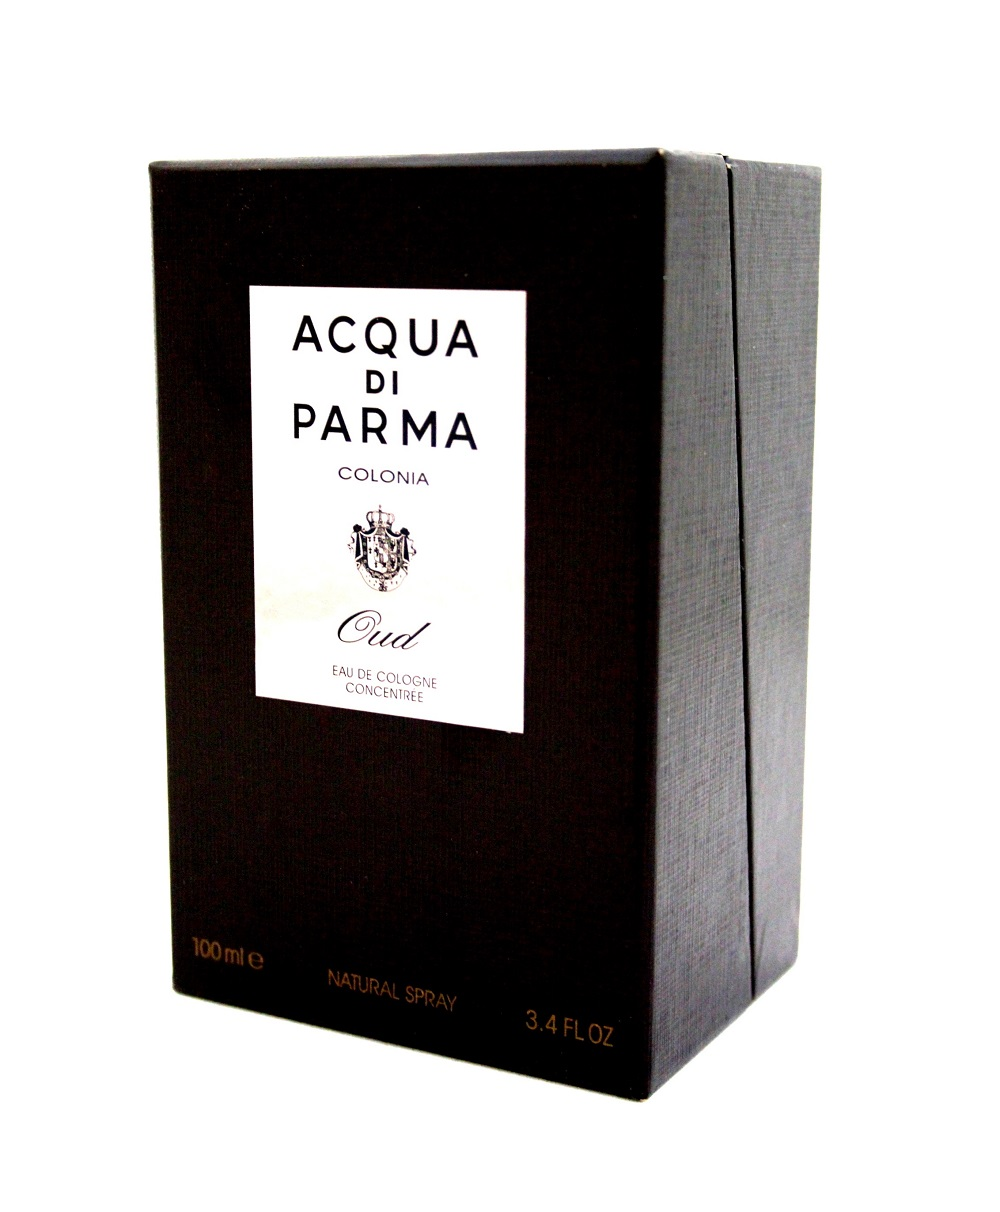 Acqua di Parma Colonia Intensa Oud Eau de Cologne